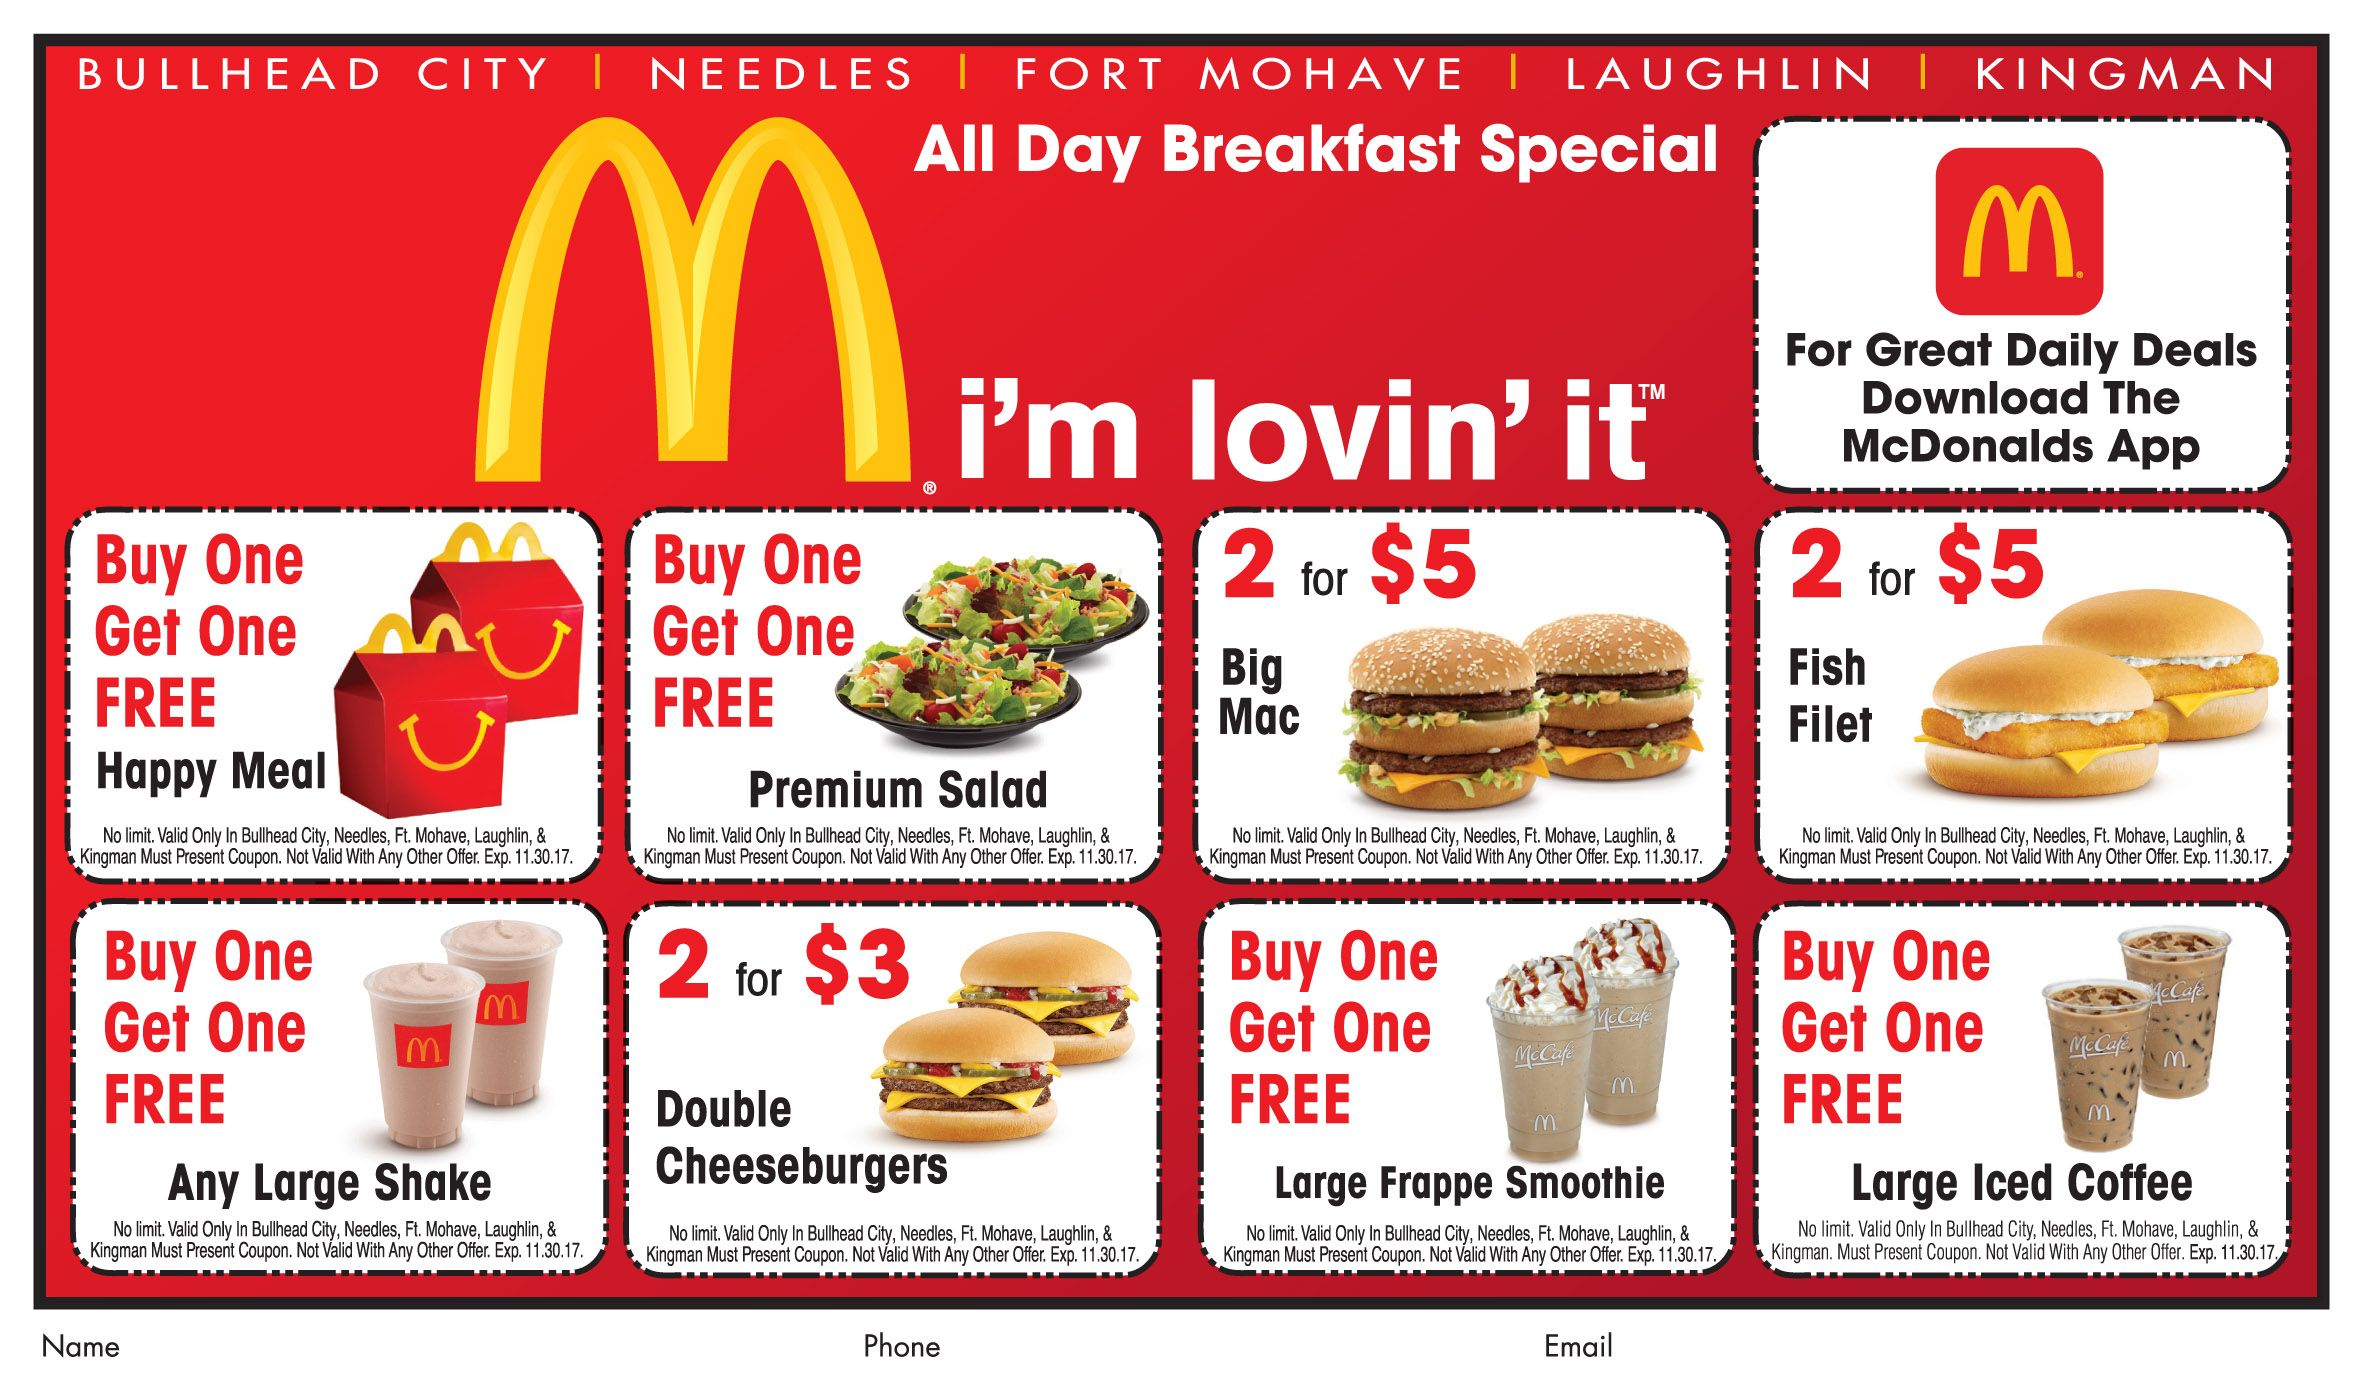 On The Go Stop By Mcdonalds For One Of Their Tasty Burgers Fries Or Shakes Today Adspay Mcdonalds Fast Free Food Coupons Delicious Burgers Food Coupon